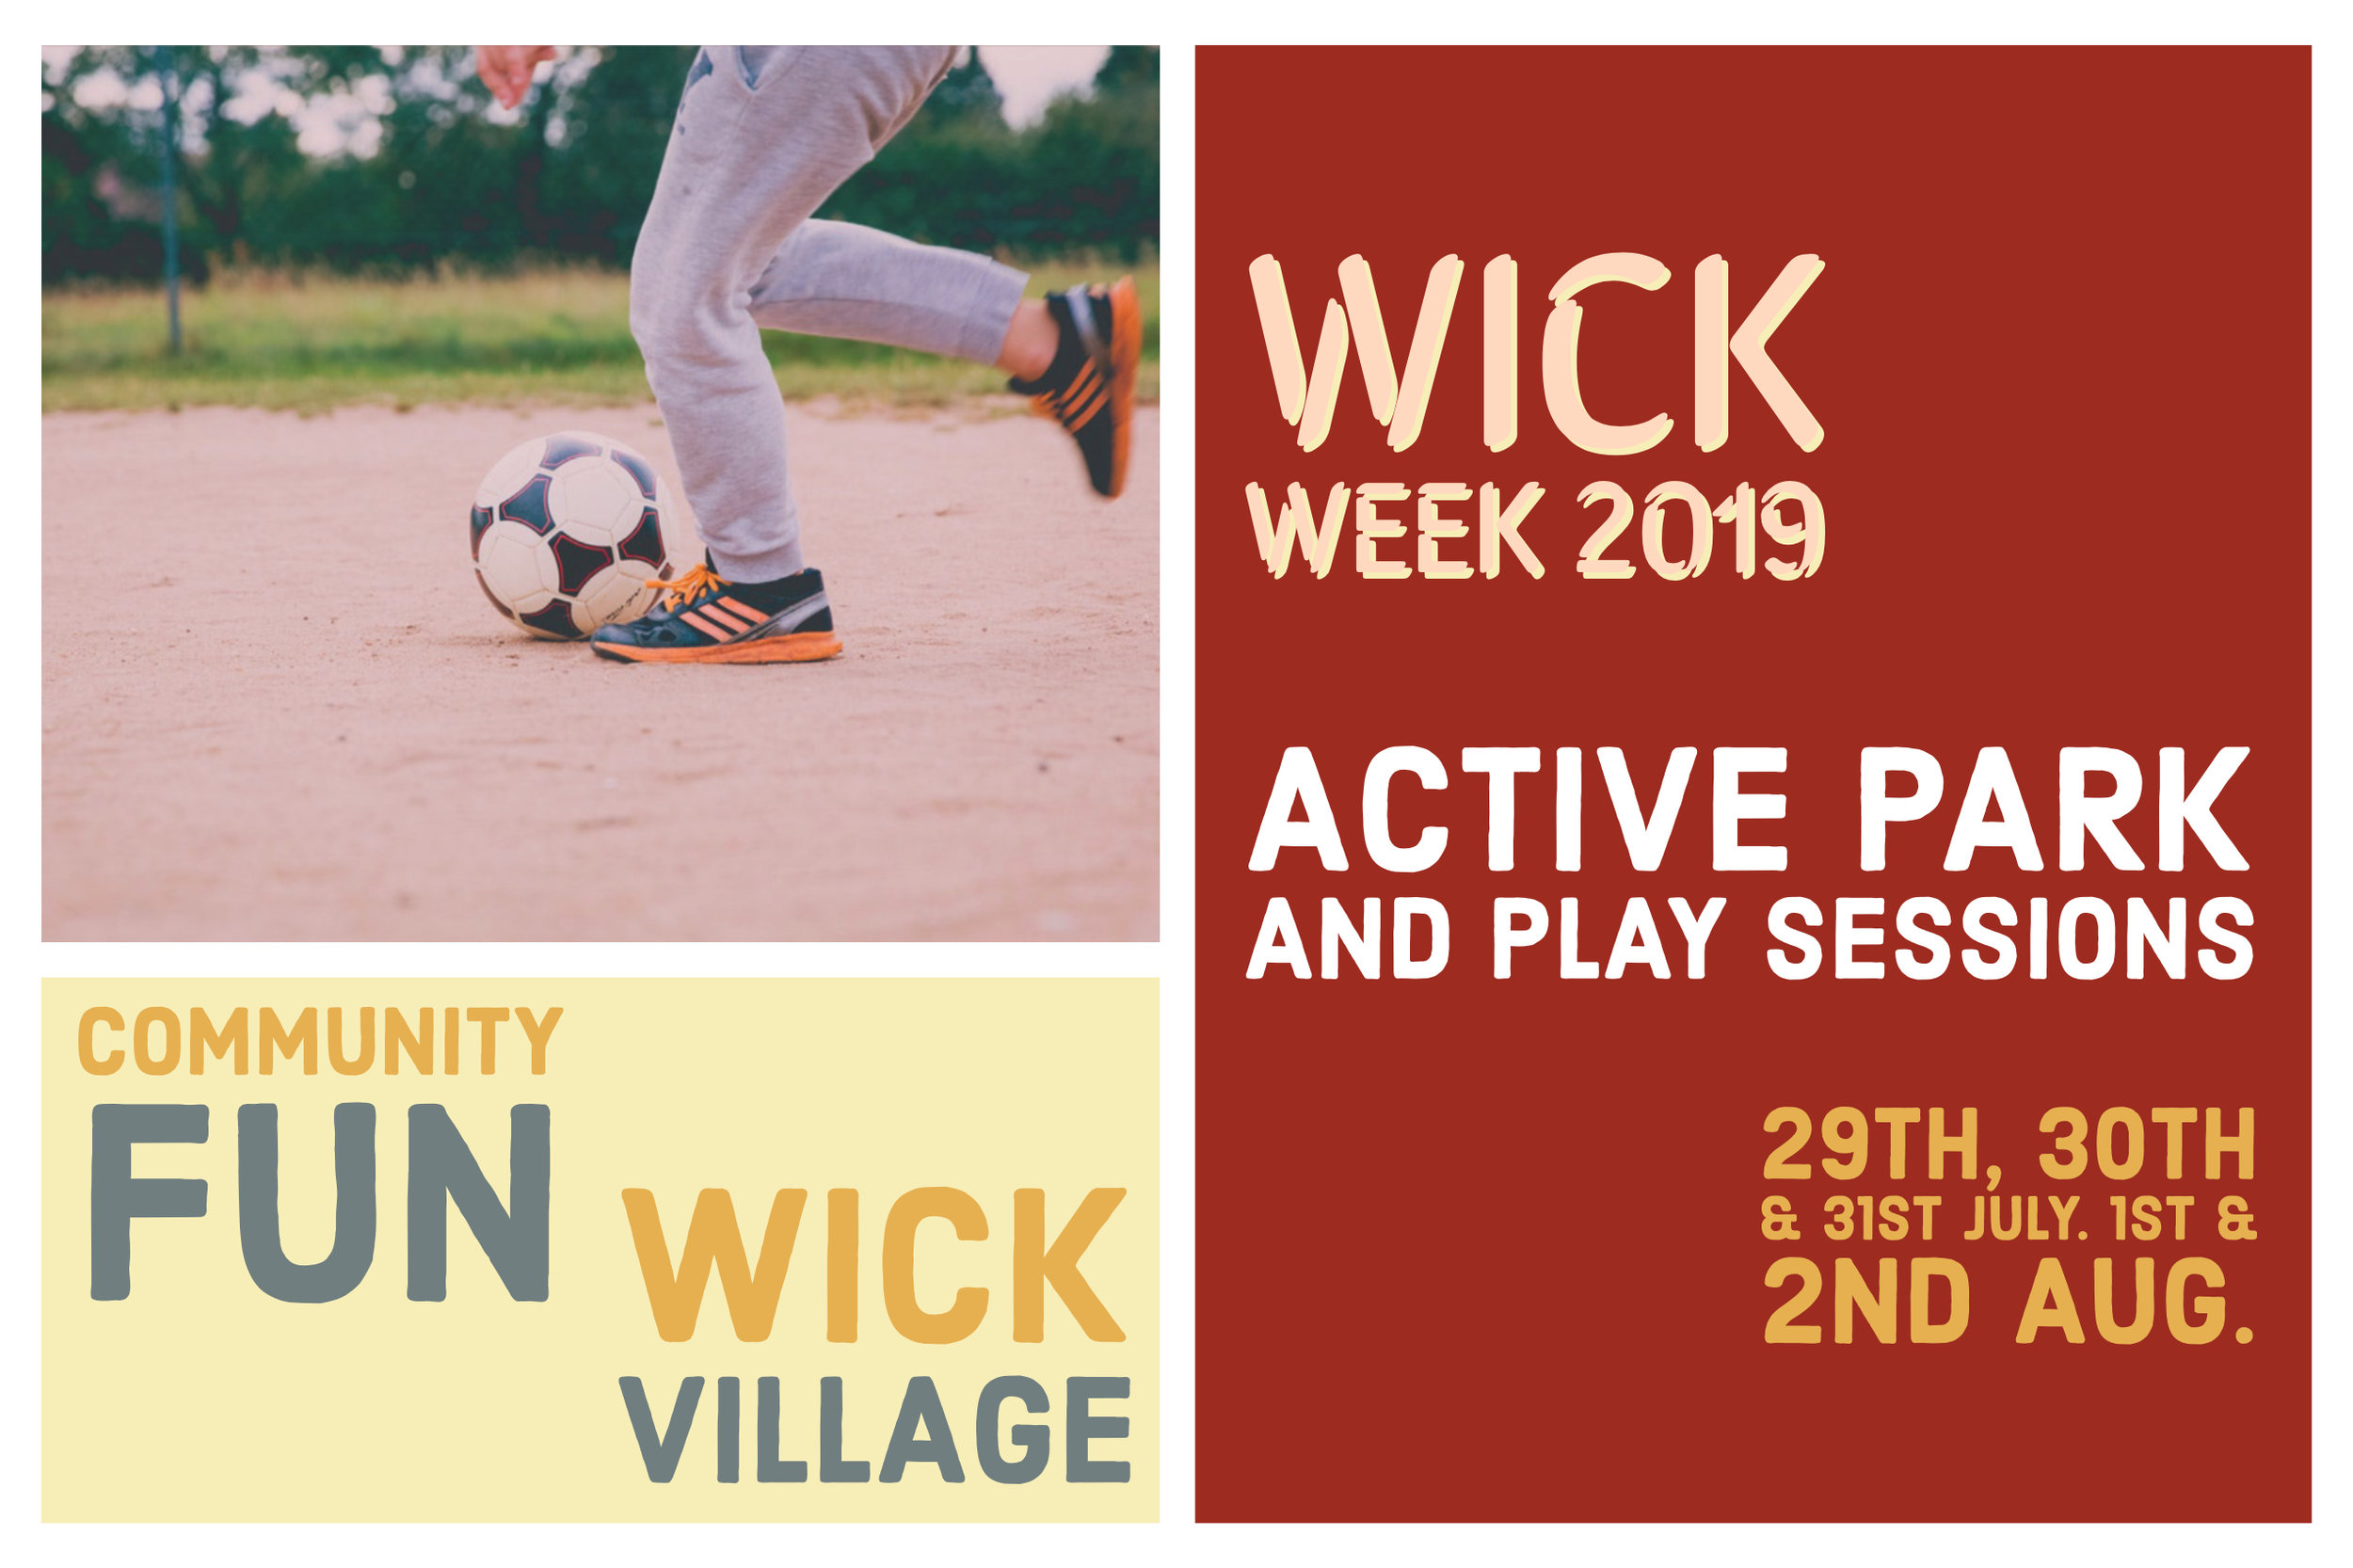 Wick Week 2019 - Active Park And Play Sessions.